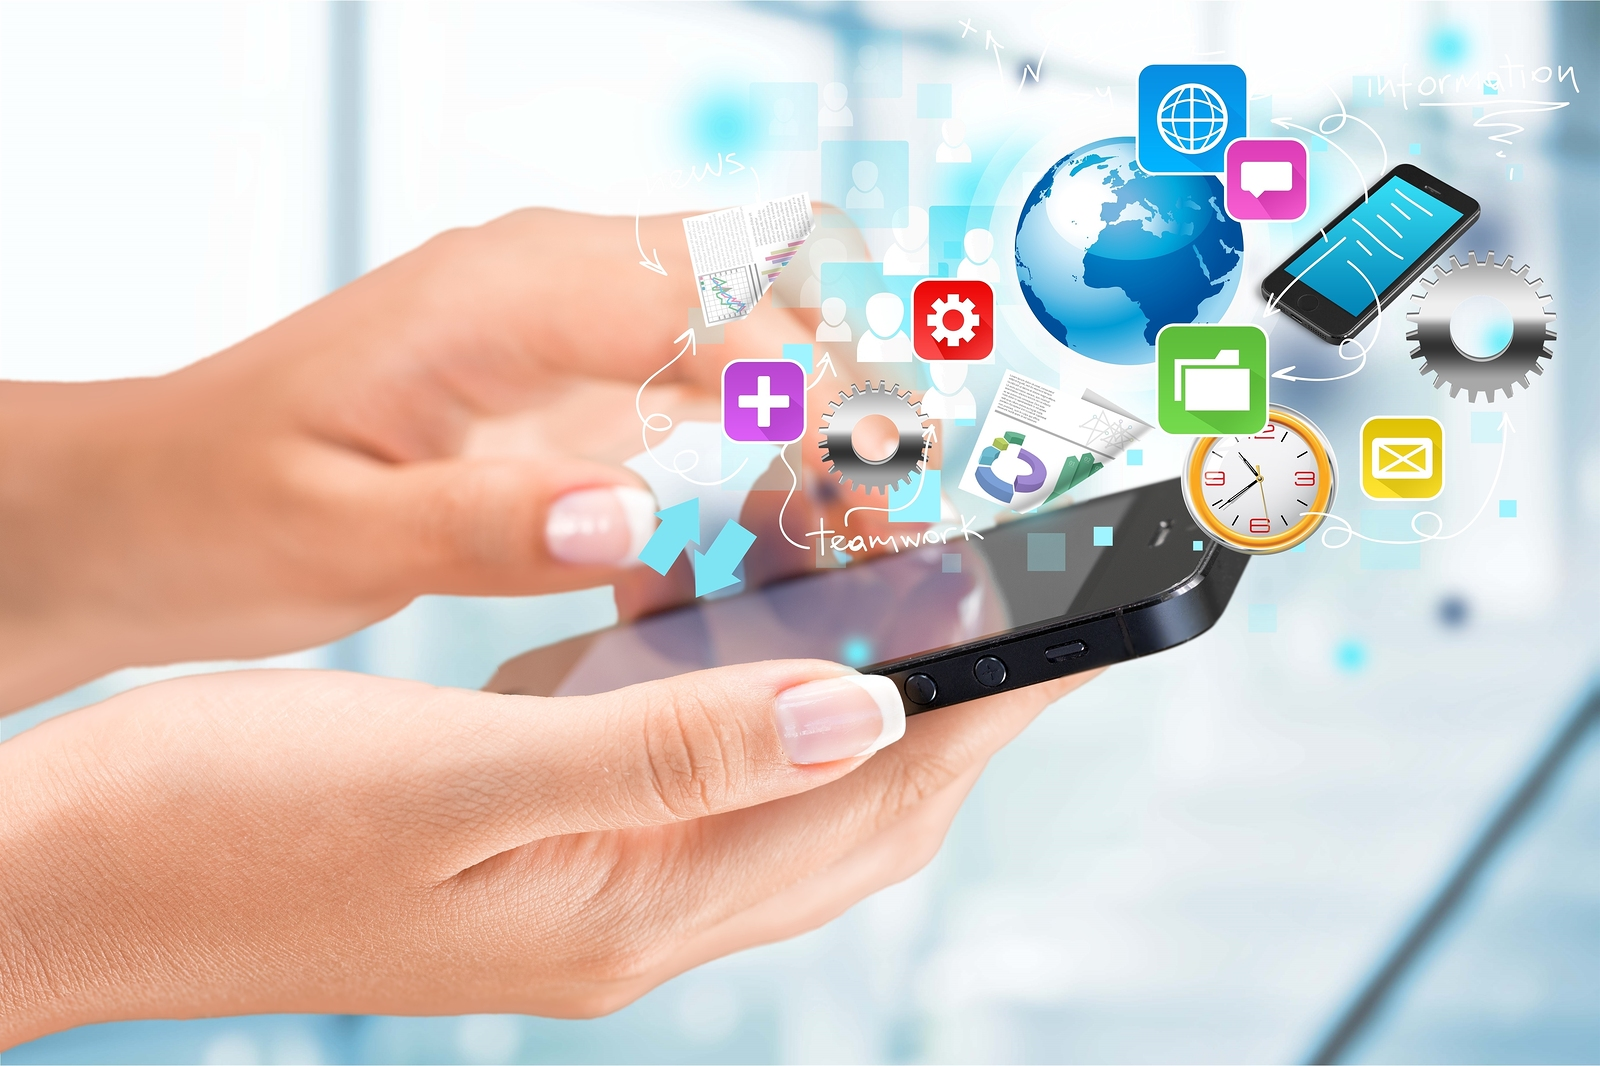 Mobile Apps 2017